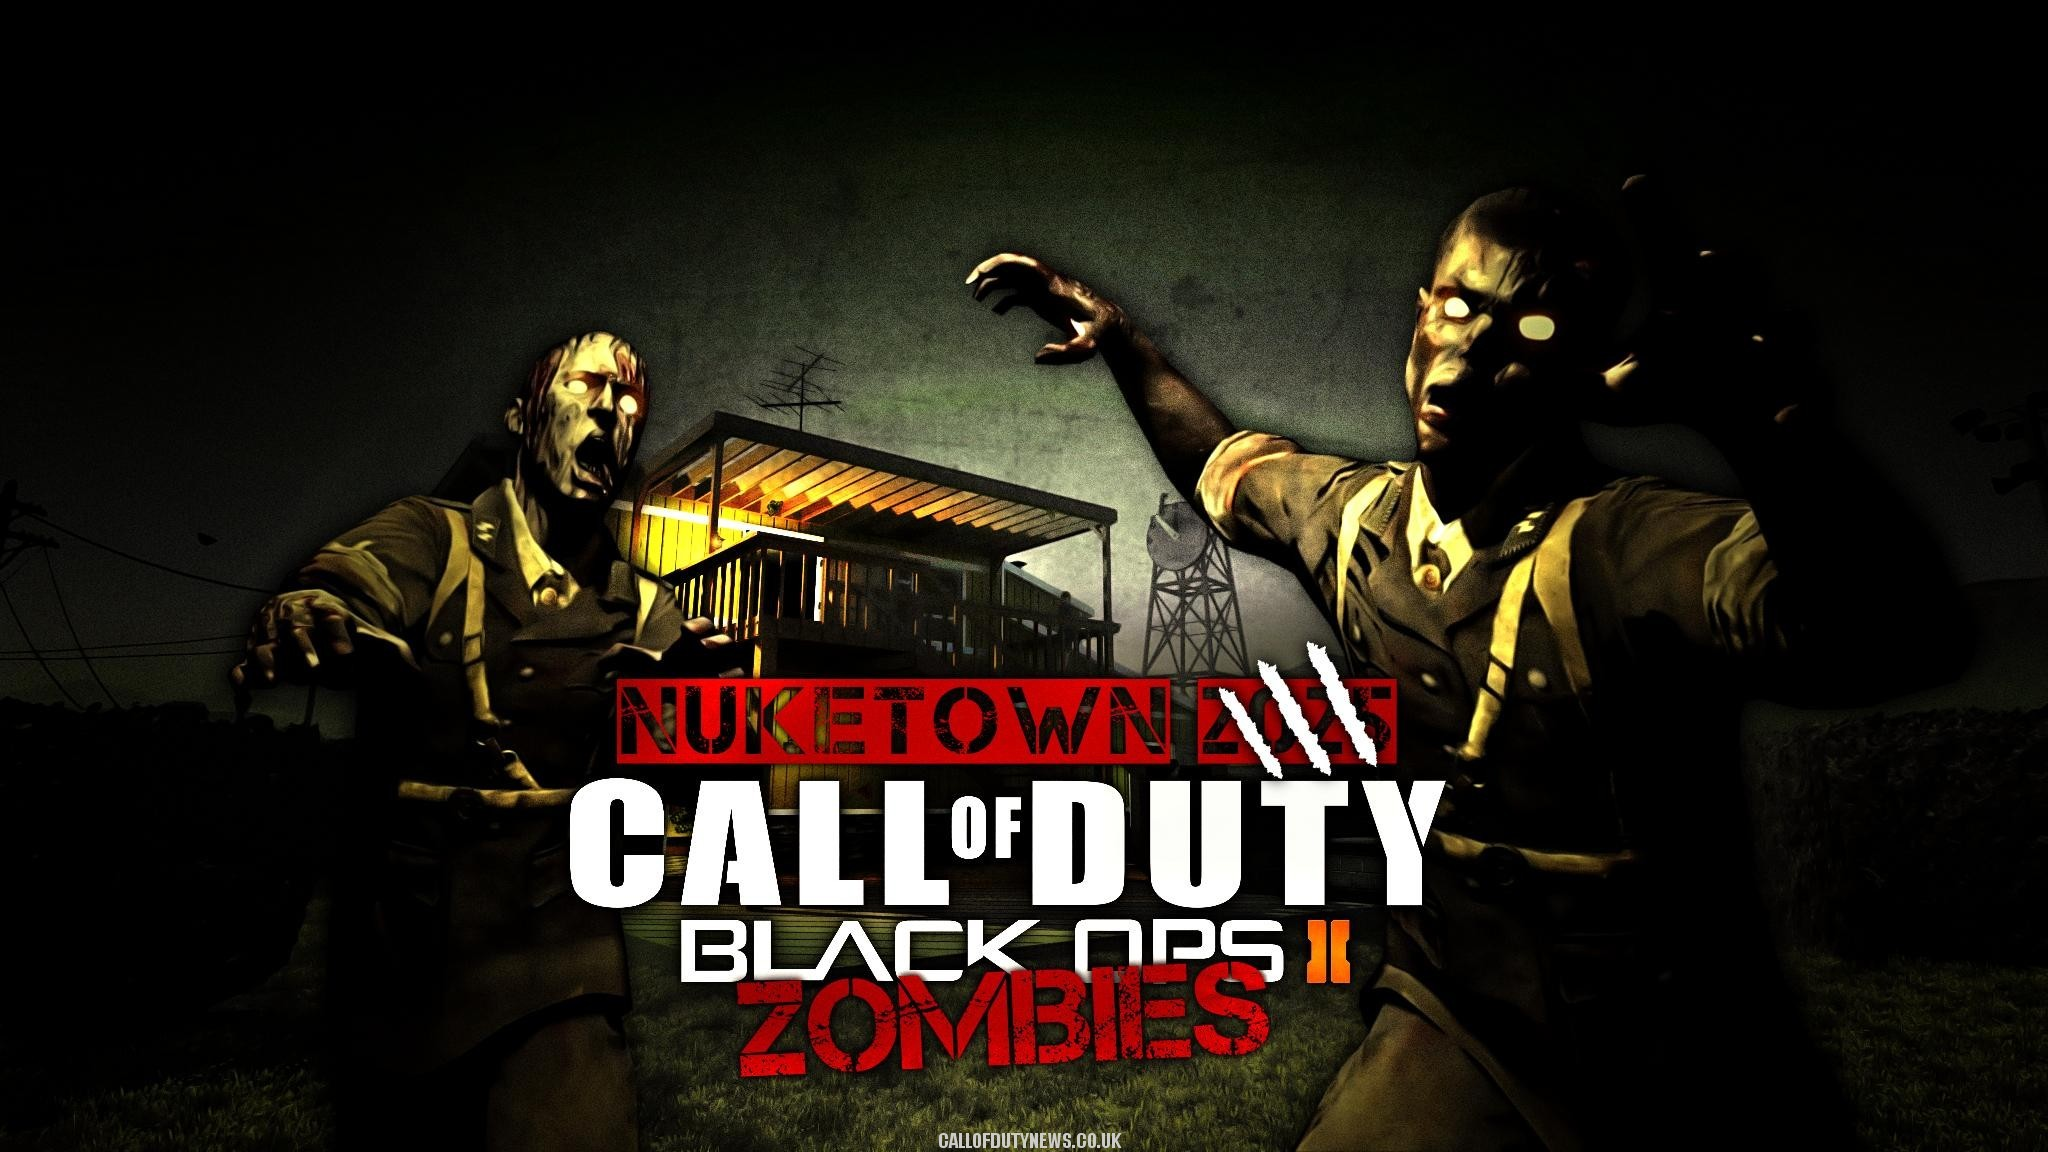 Black ops 2 zombie wallpaper iphone by El-President-ay on DeviantArt |  Adorable Wallpapers | Pinterest | Zombie wallpaper, Black ops and Wallpaper